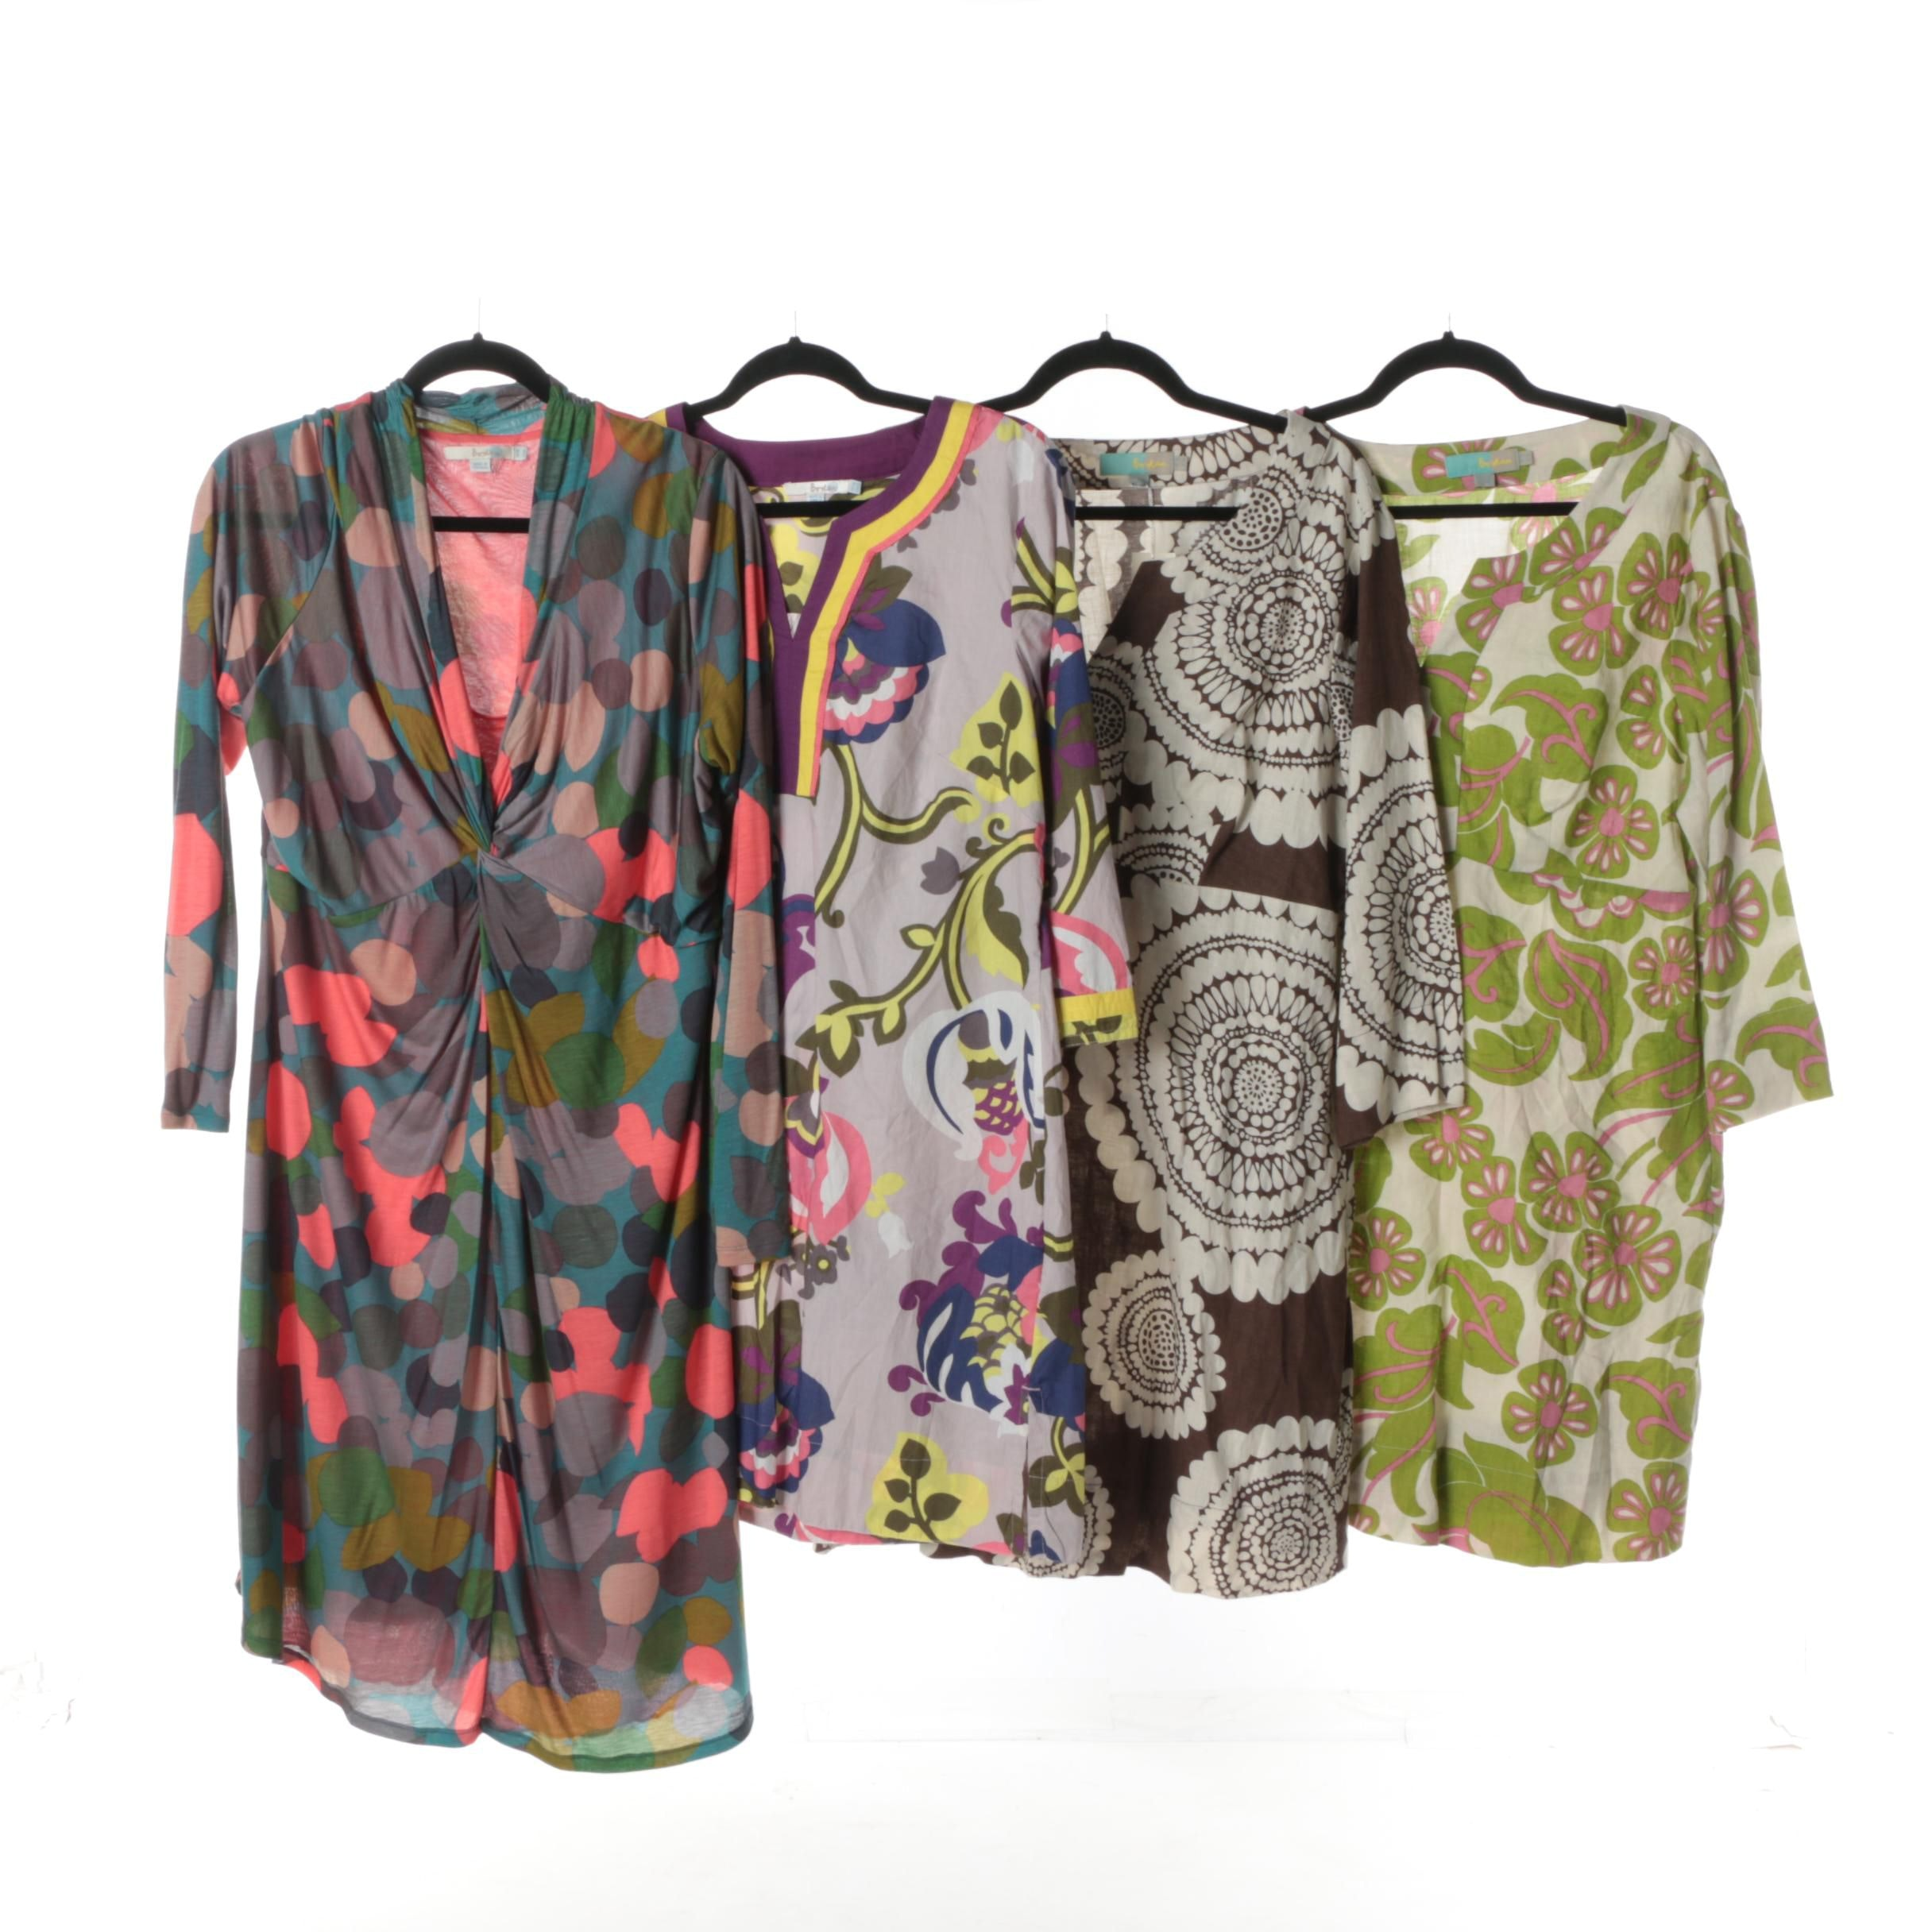 Women's Boden Tunics and Dress